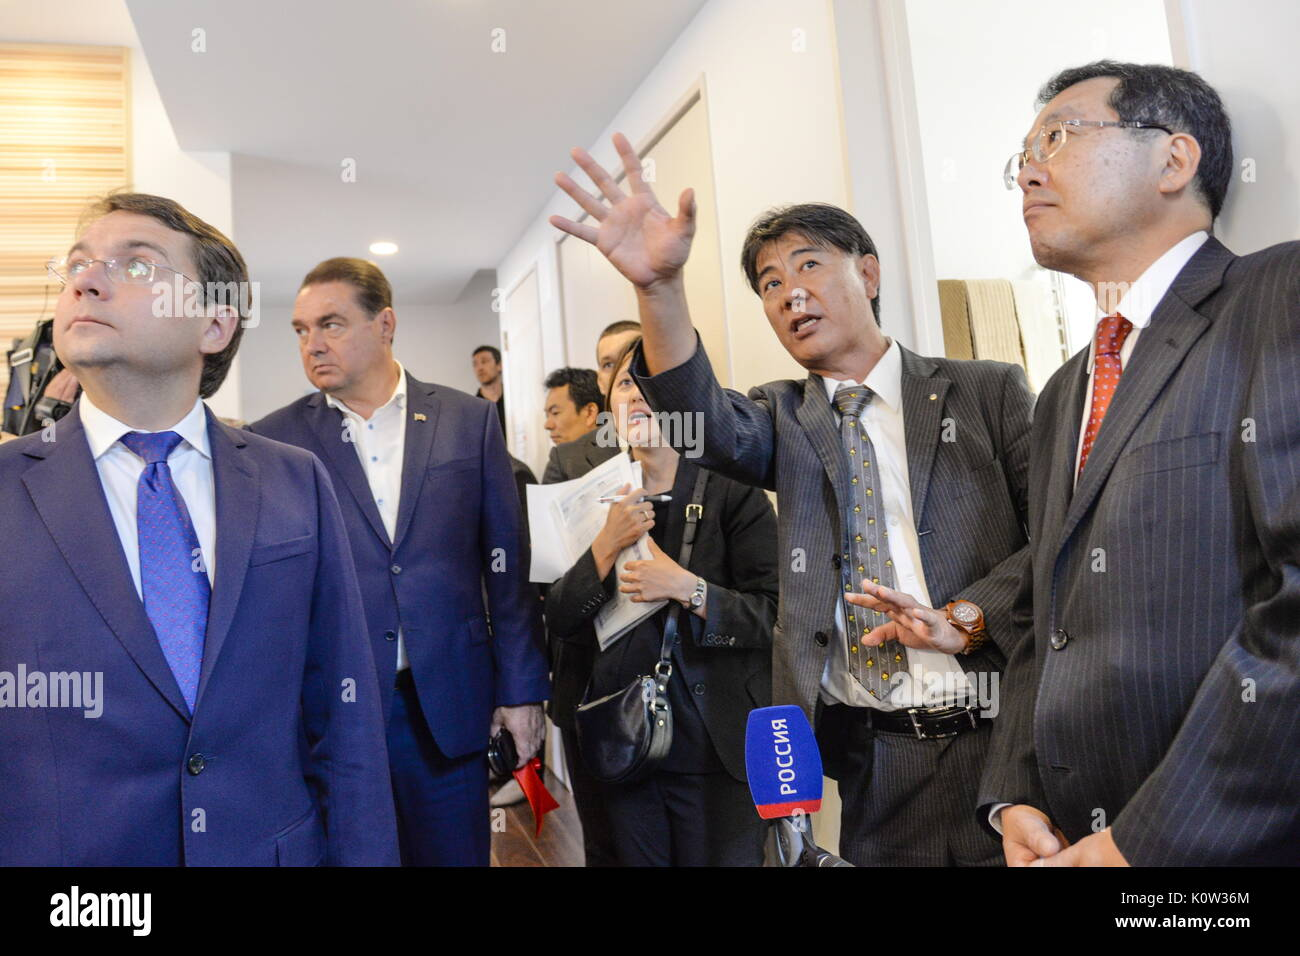 VORONEZH, RUSSIA - AUGUST 24, 2017: Russia's Deputy Construction, Housing and Utilities Minister Andrei Chibis (L) and Japan's Deputy Land, Infrastructure, Transport and Tourism Minister Koichi Yoshida (R) at the opening of the first Russian-Japanese two-storey smart home made of wood and eco-friendly materials. The house is equipped with energy management system, air quality monitors and temperature sensors. Kristina Brazhnikova/TASS - Stock Image